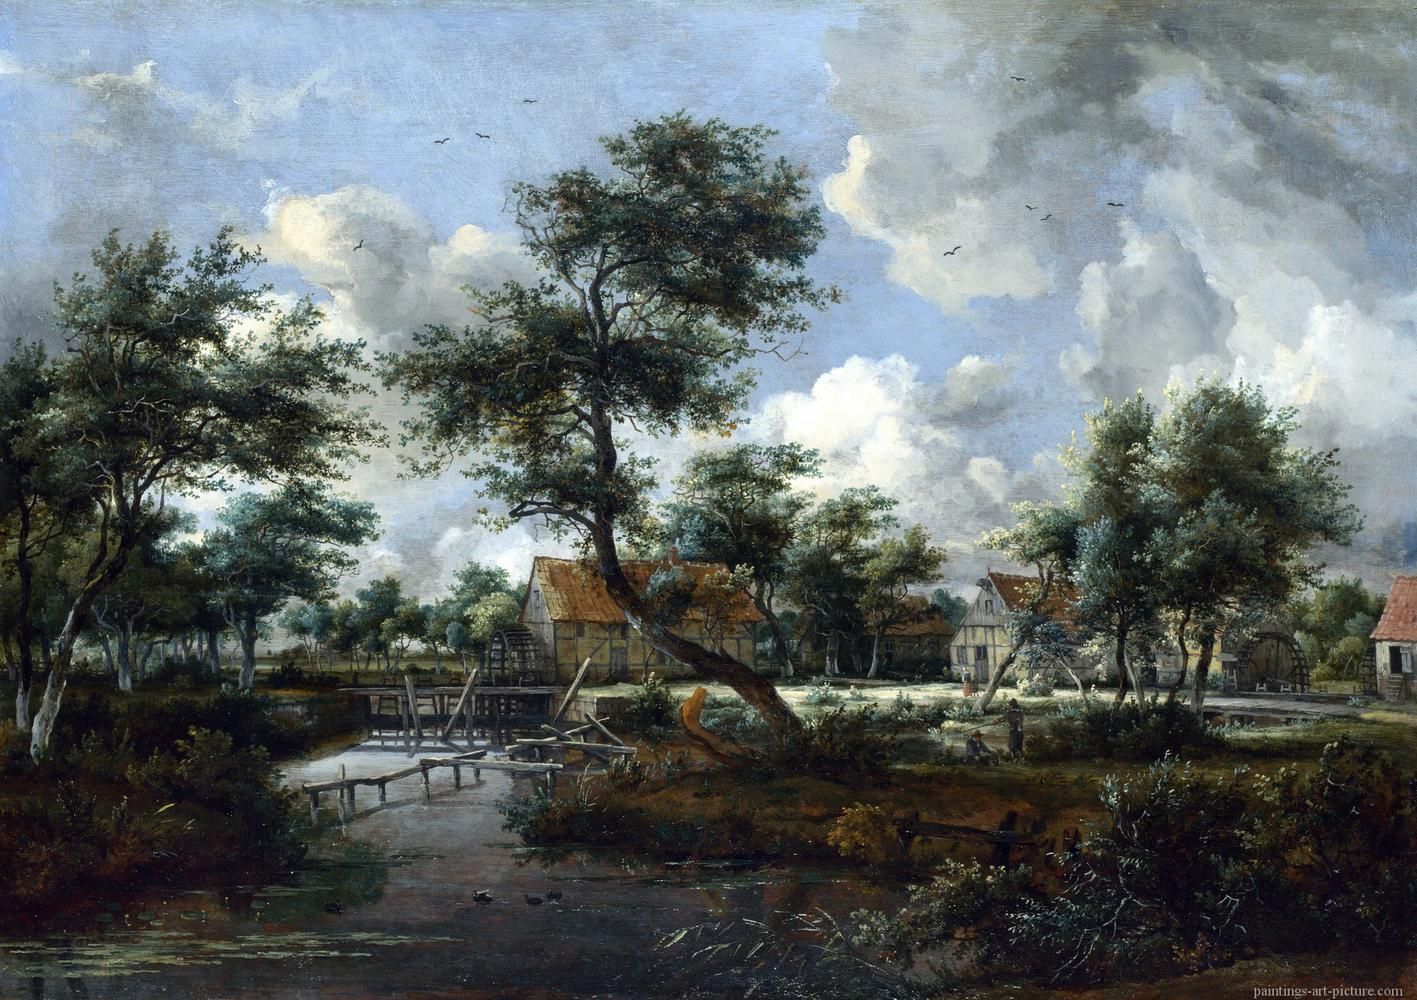 HOBBEMA-Meyndert1-The-Watermills-at-Singraven-near-Denekamp.jpg